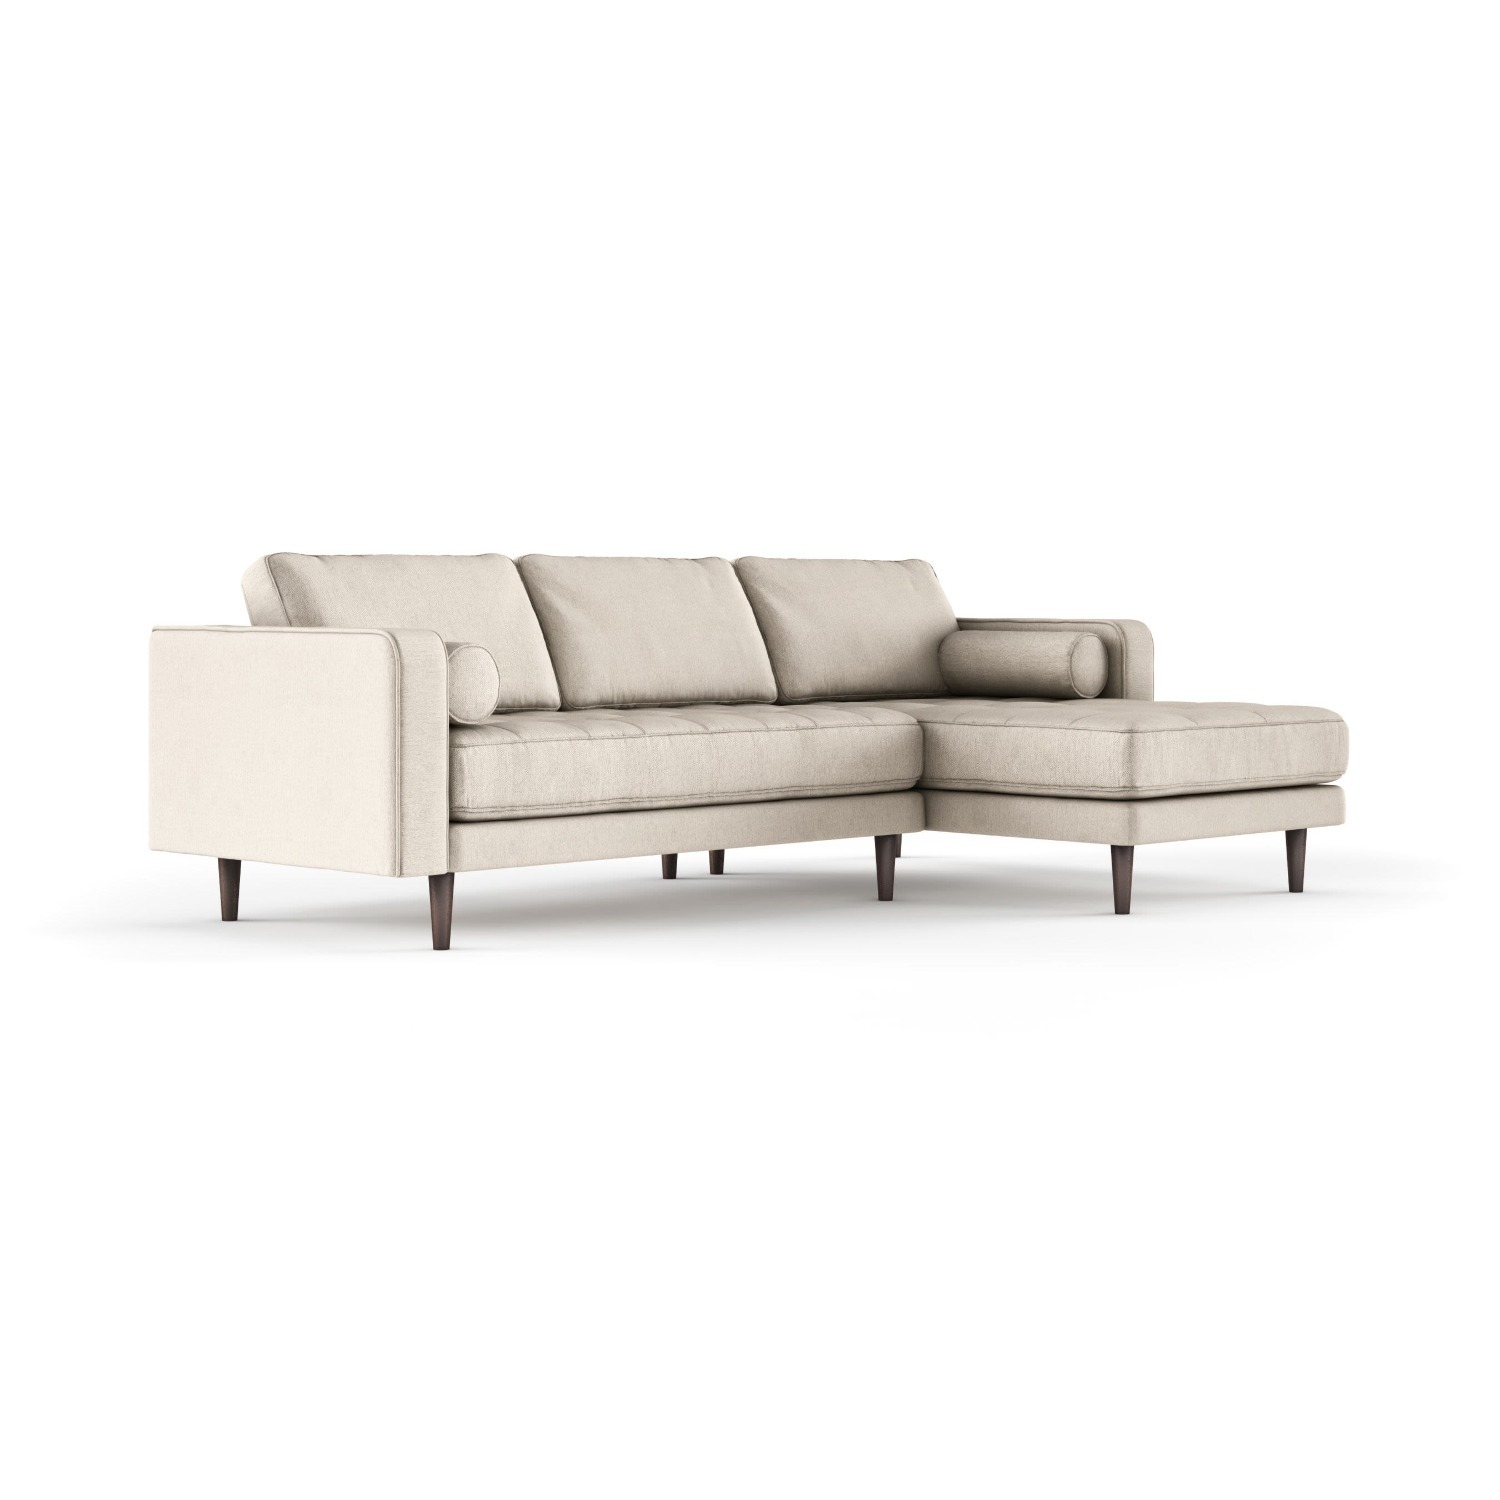 Oliver Space Breuer - Right Chaise - image-8